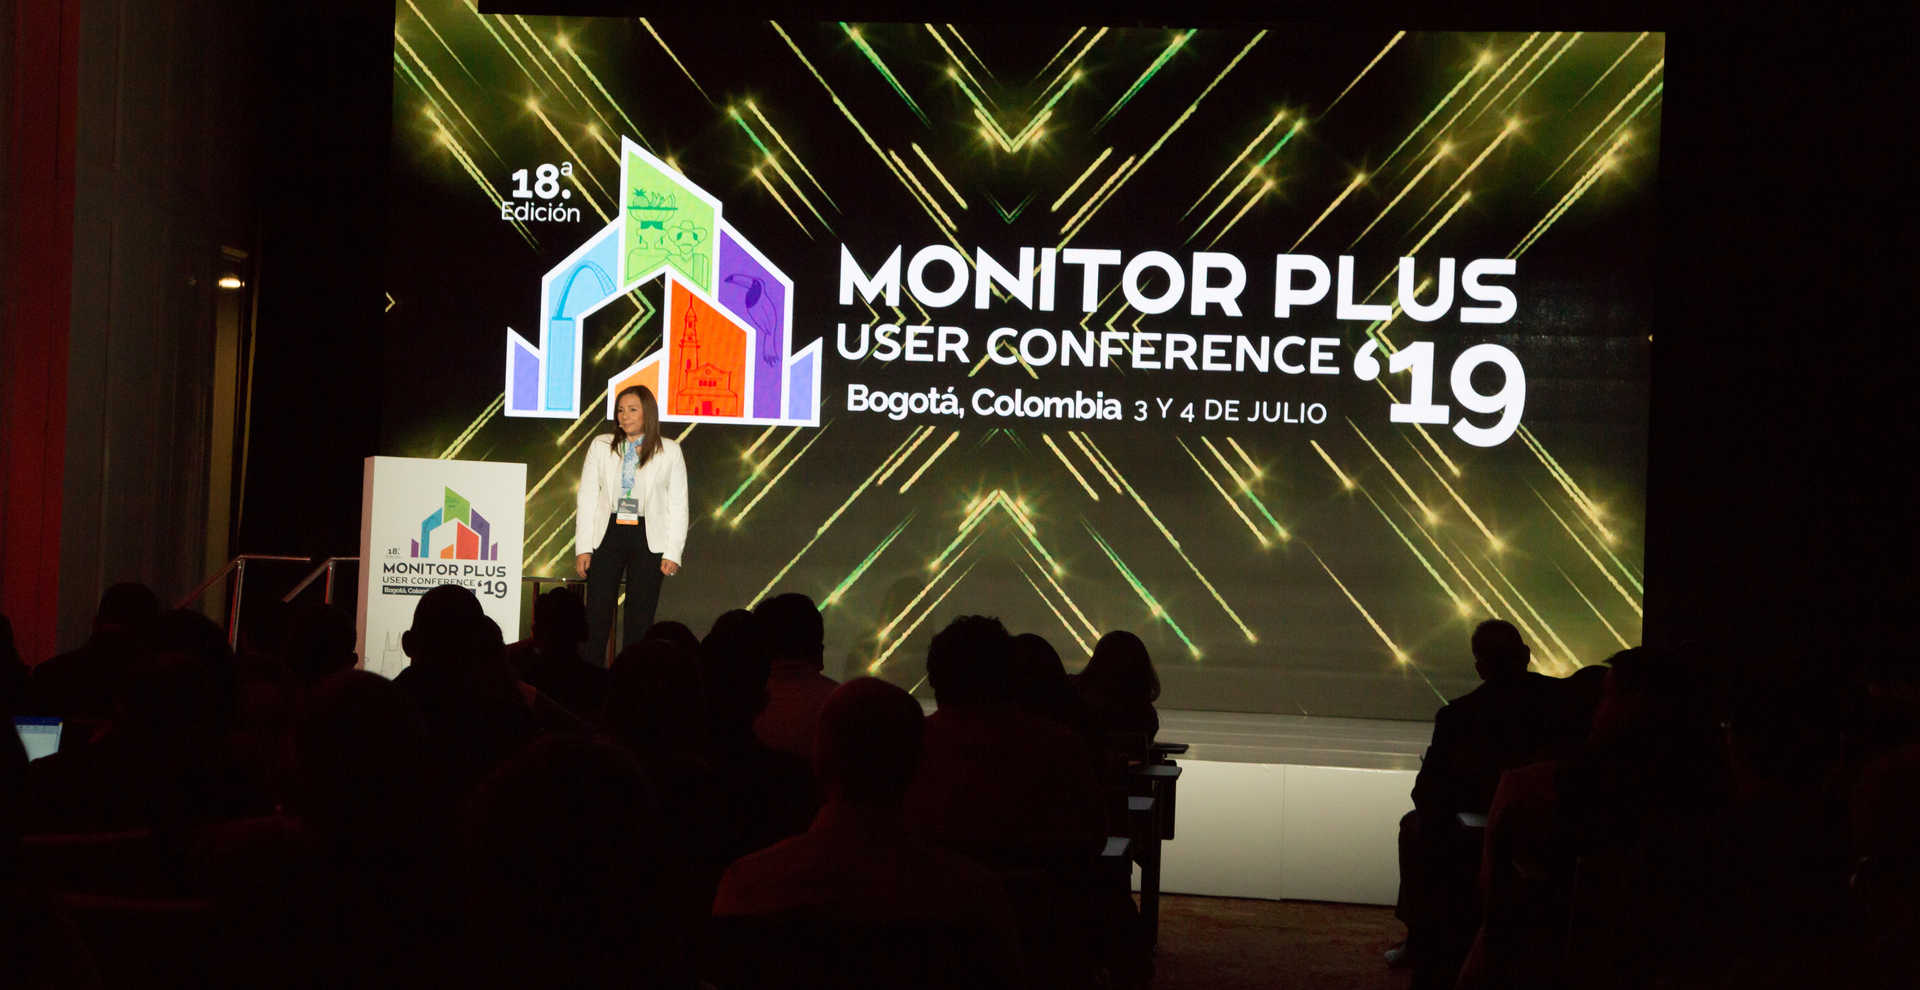 Martha Leuro: Digitalidad y Seguridad - Prevención de Fraude - Monitor Plus User Conference 2019